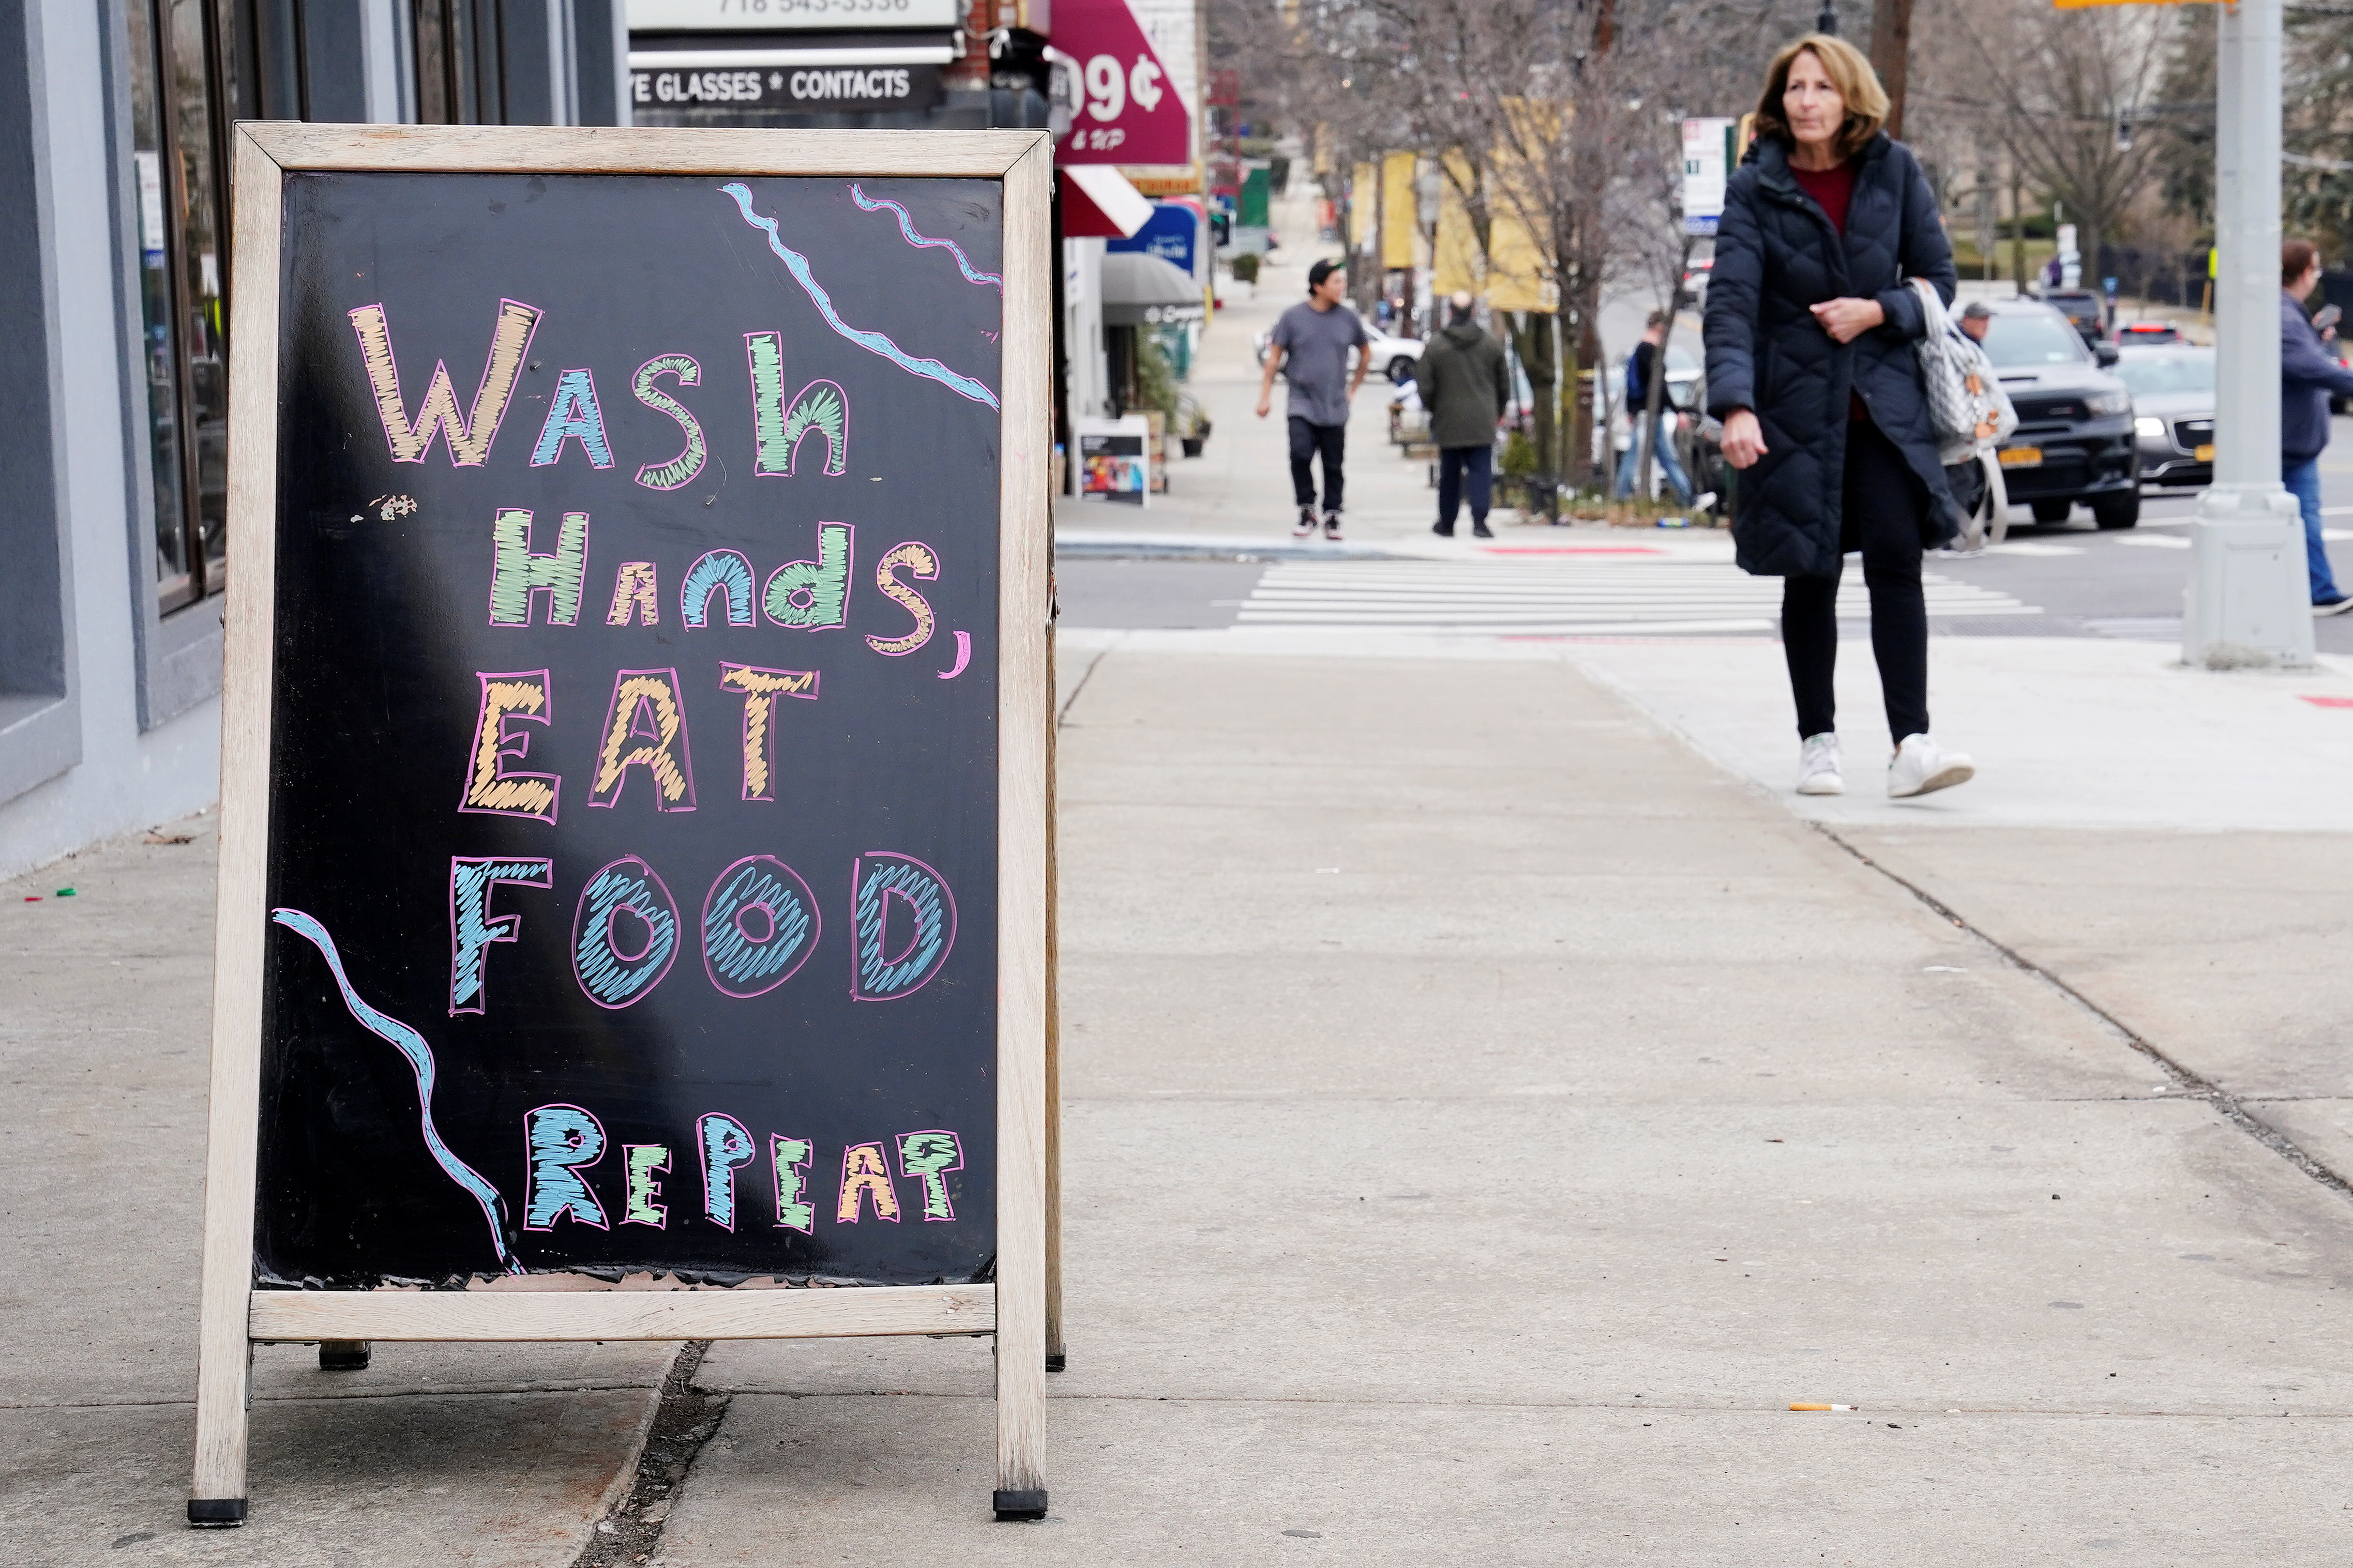 A restaurant displays a sign around the corner from SAR High School, which has been shut down due to Coronavirus, in the Bronx borough of New York City, New York on March 3, 2020. (Carlo Allegri/Reuters)